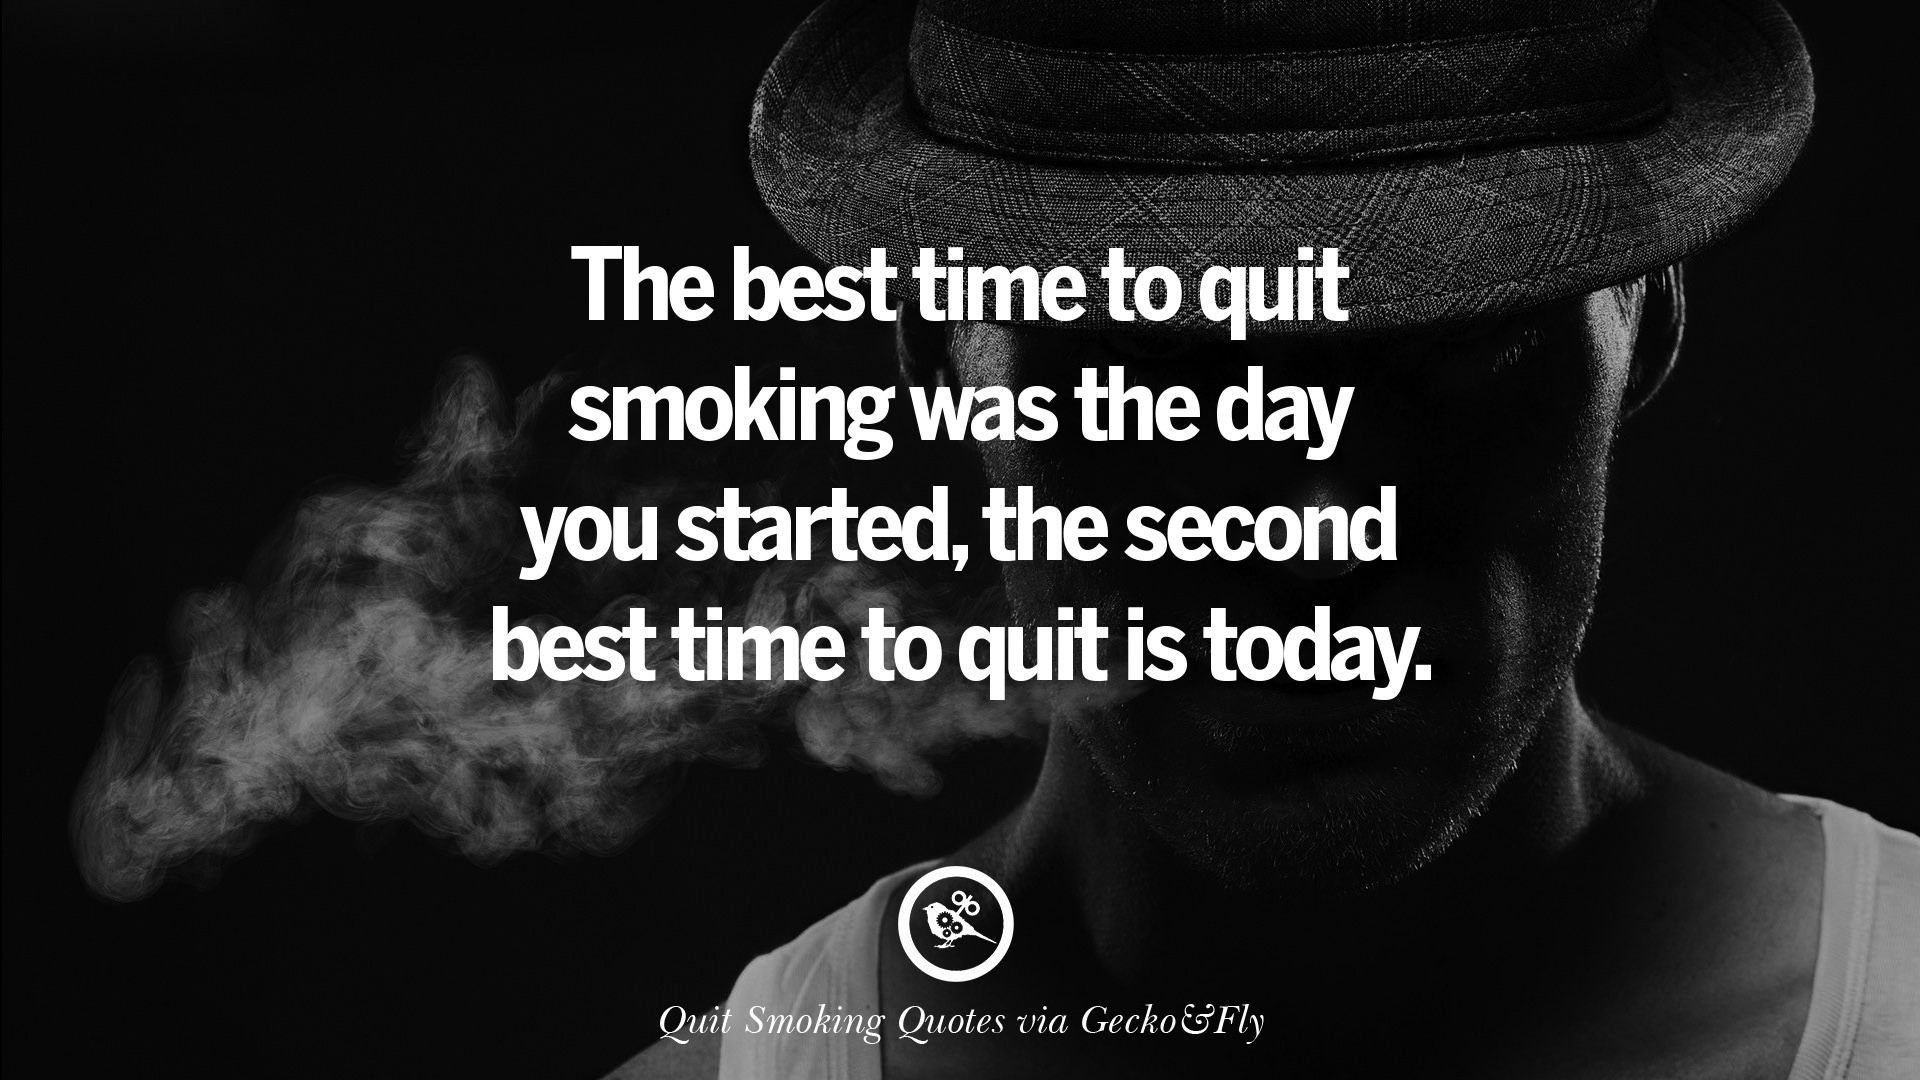 Quotes About Smoking 20 Motivational Slogans To Help You Quit Smoking And Stop Lungs